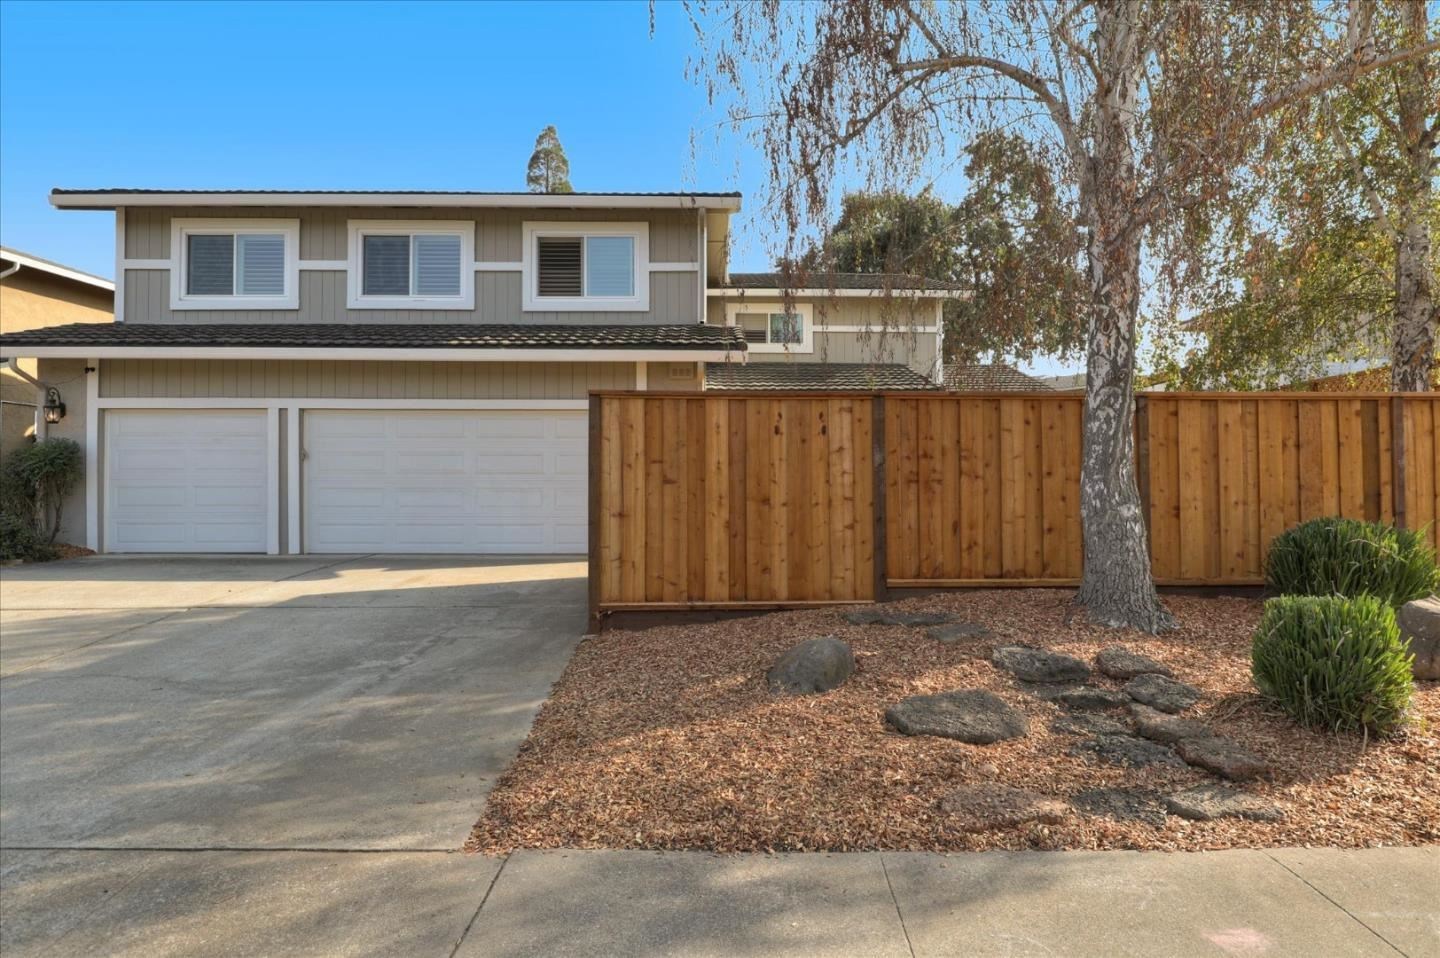 1010 Creekside CT, Morgan Hill, CA 95037 - #: ML81814753